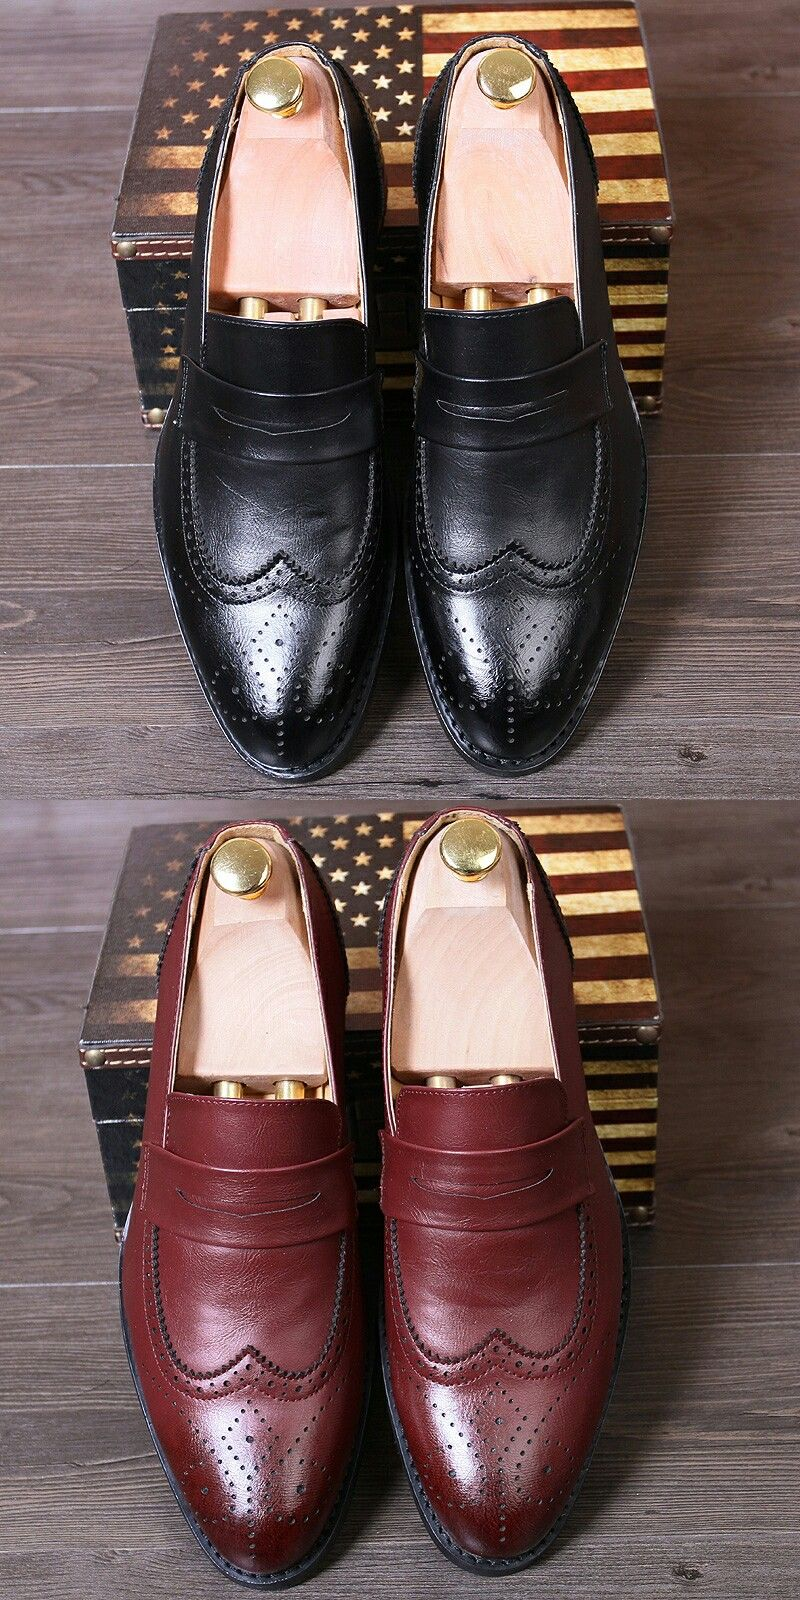 US  30.07 2018 Italian Luxury Designer Formal Mens Dress Shoes Leather  Wingtip Slip On Basic Flats 2bfd392ec904